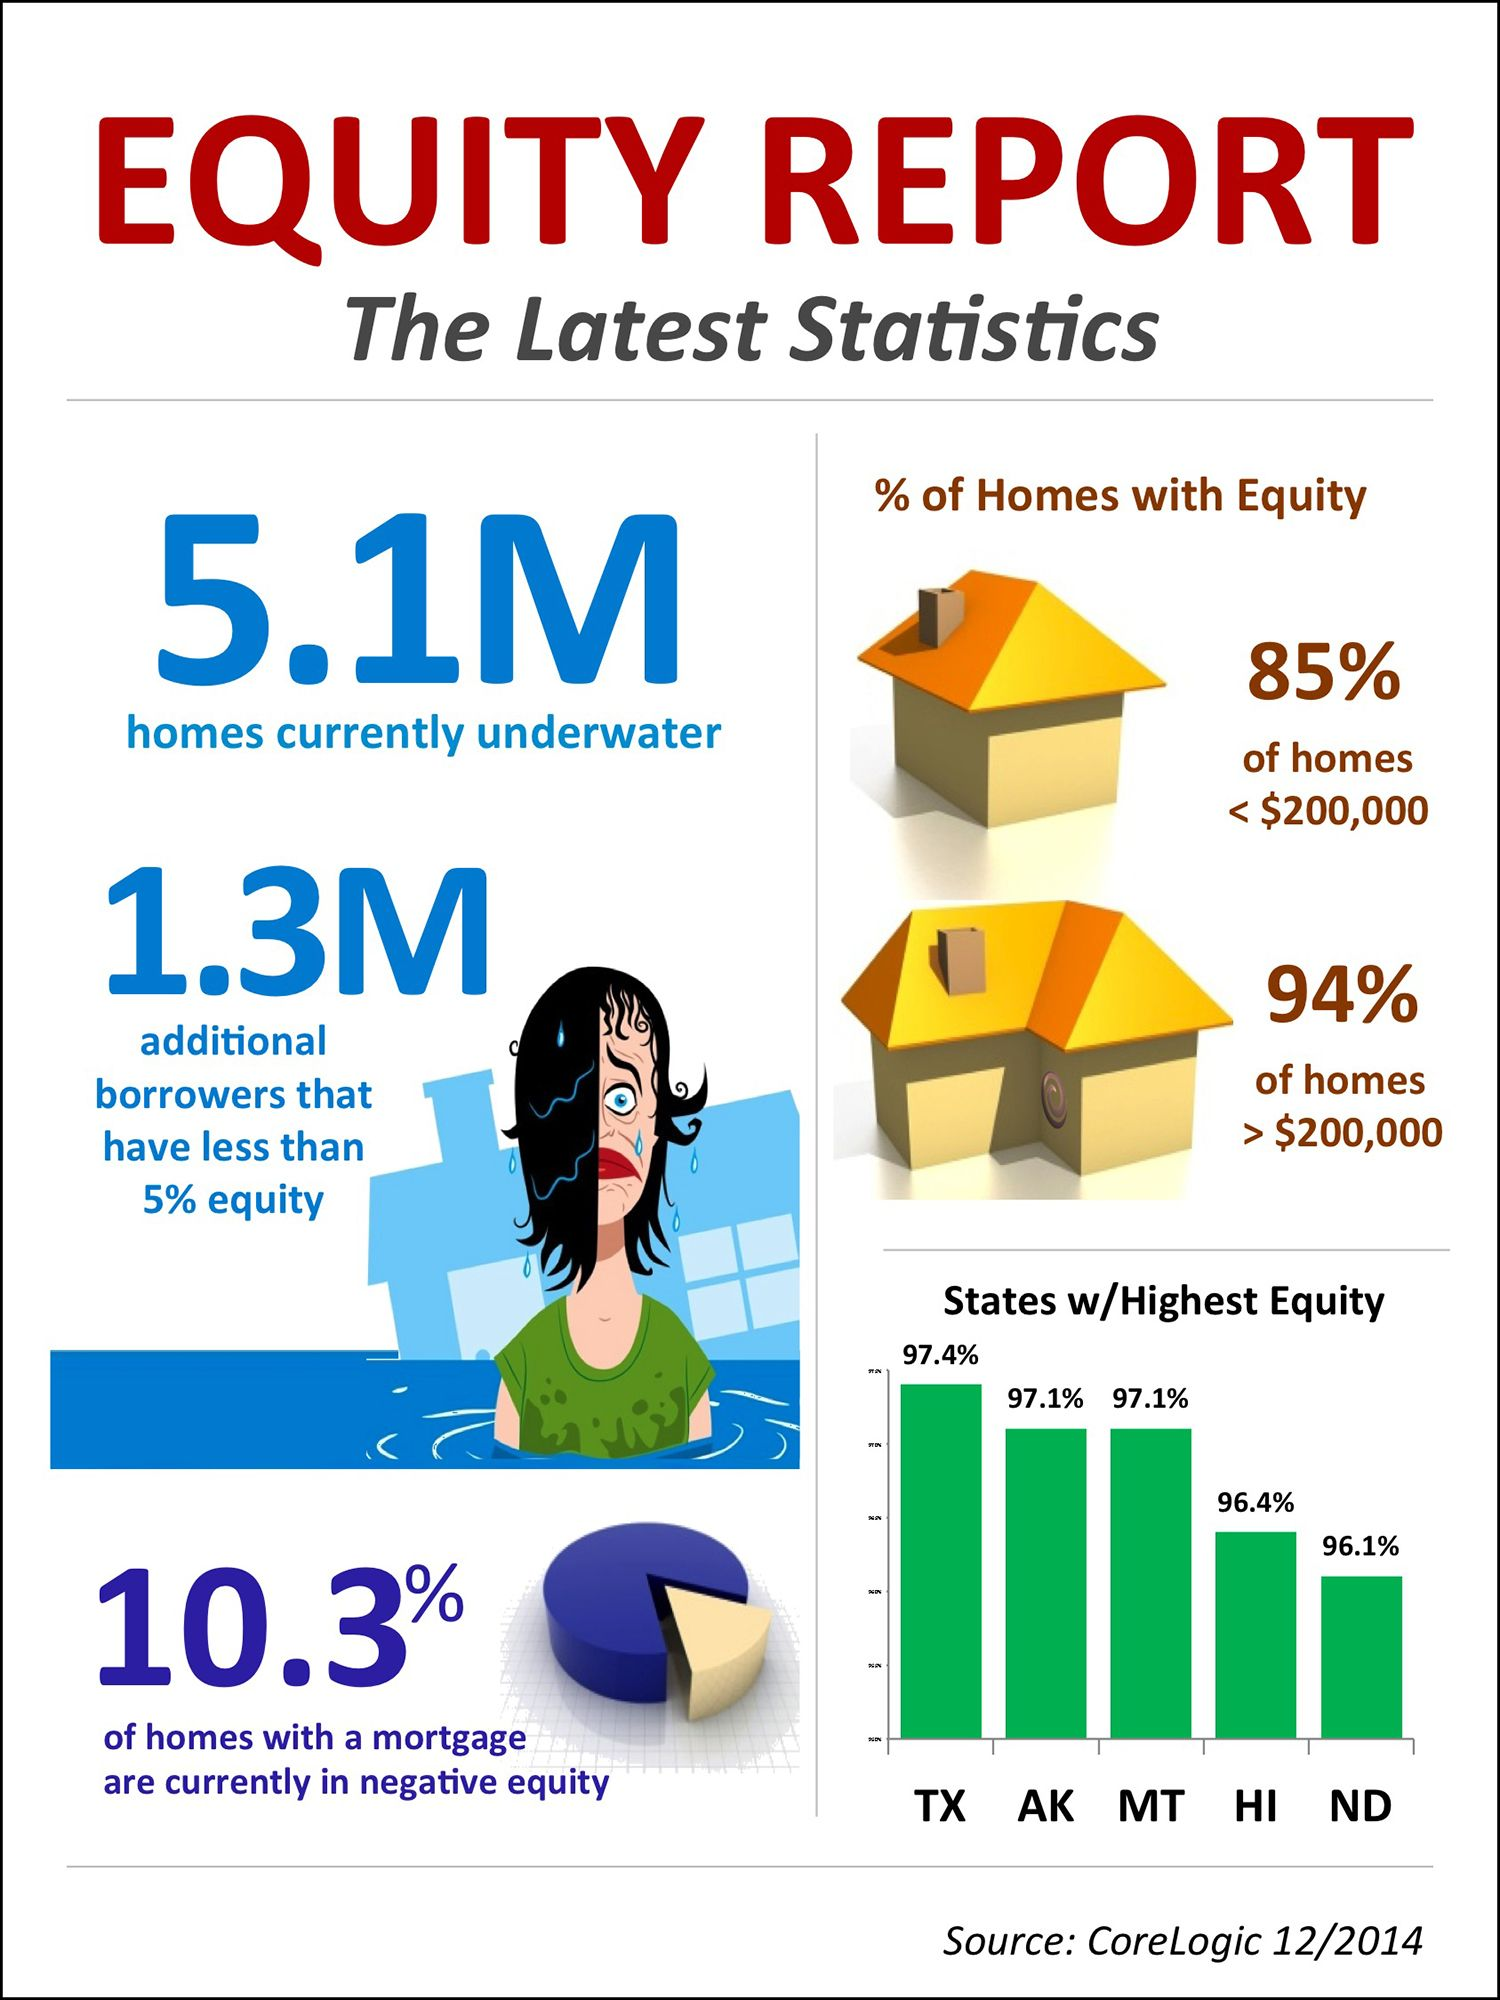 Equity Report Infographic | The Latest Statistics | Equity ...